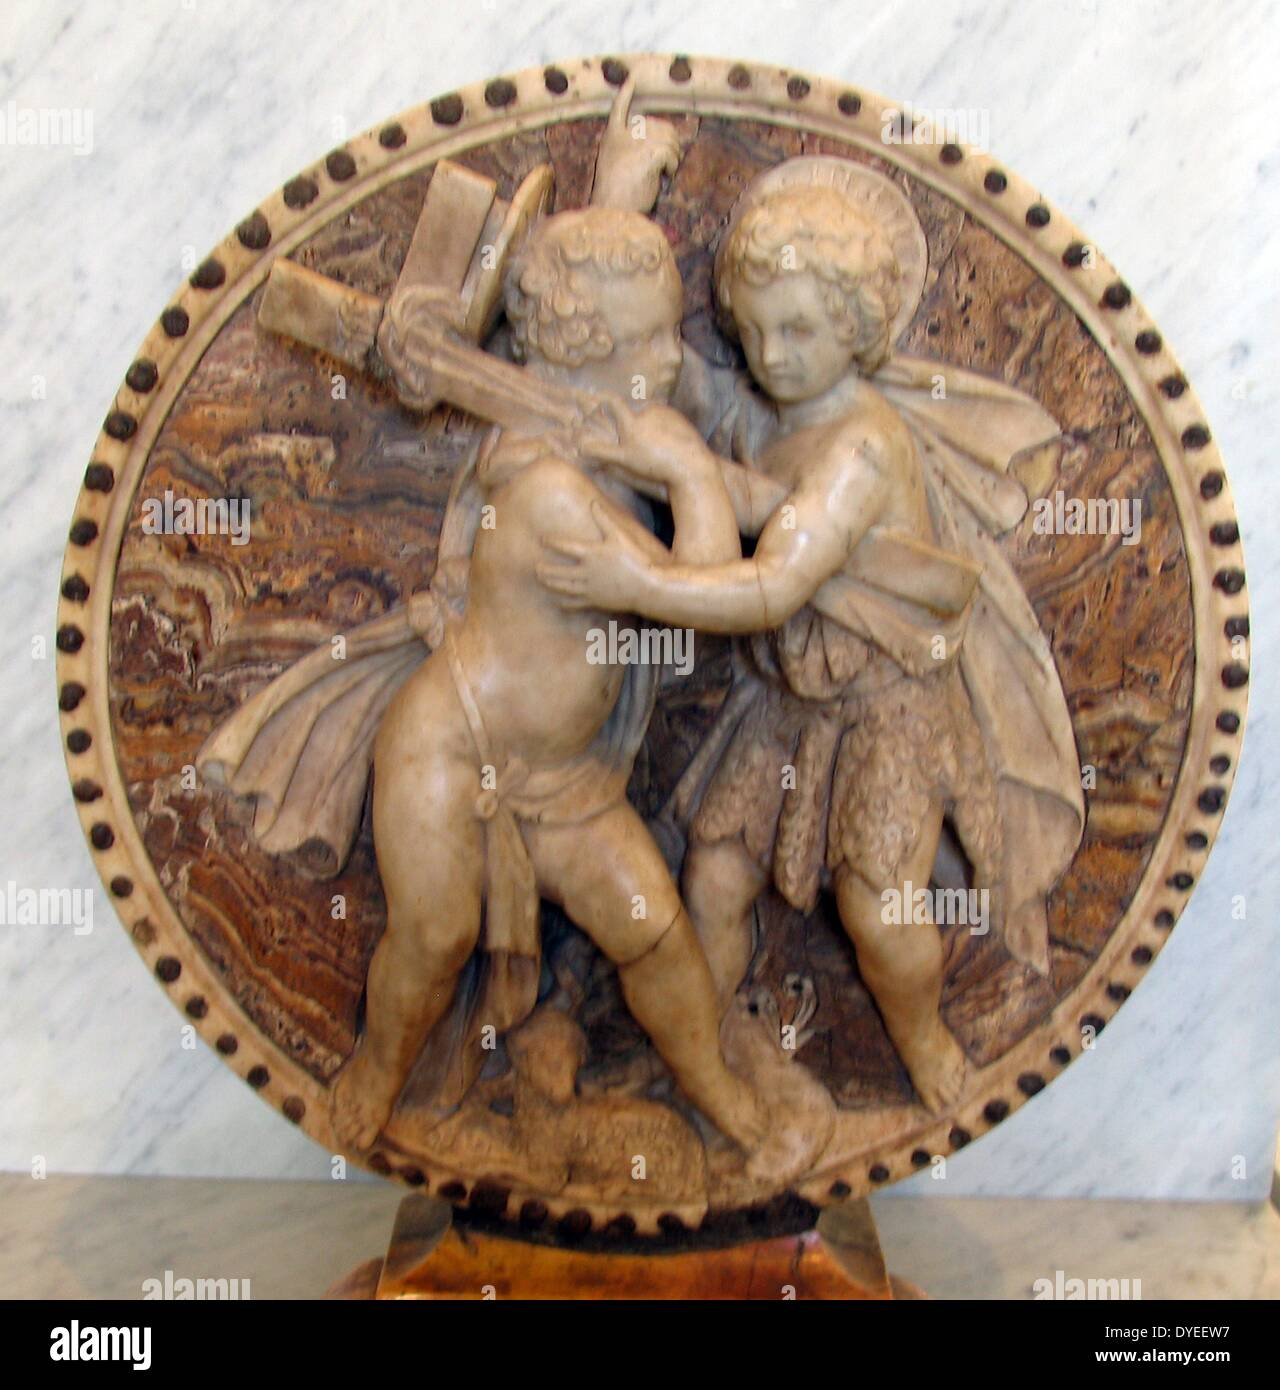 Marble carving of Infant Jesus and John the Baptist 1474 A.D. - Stock Image